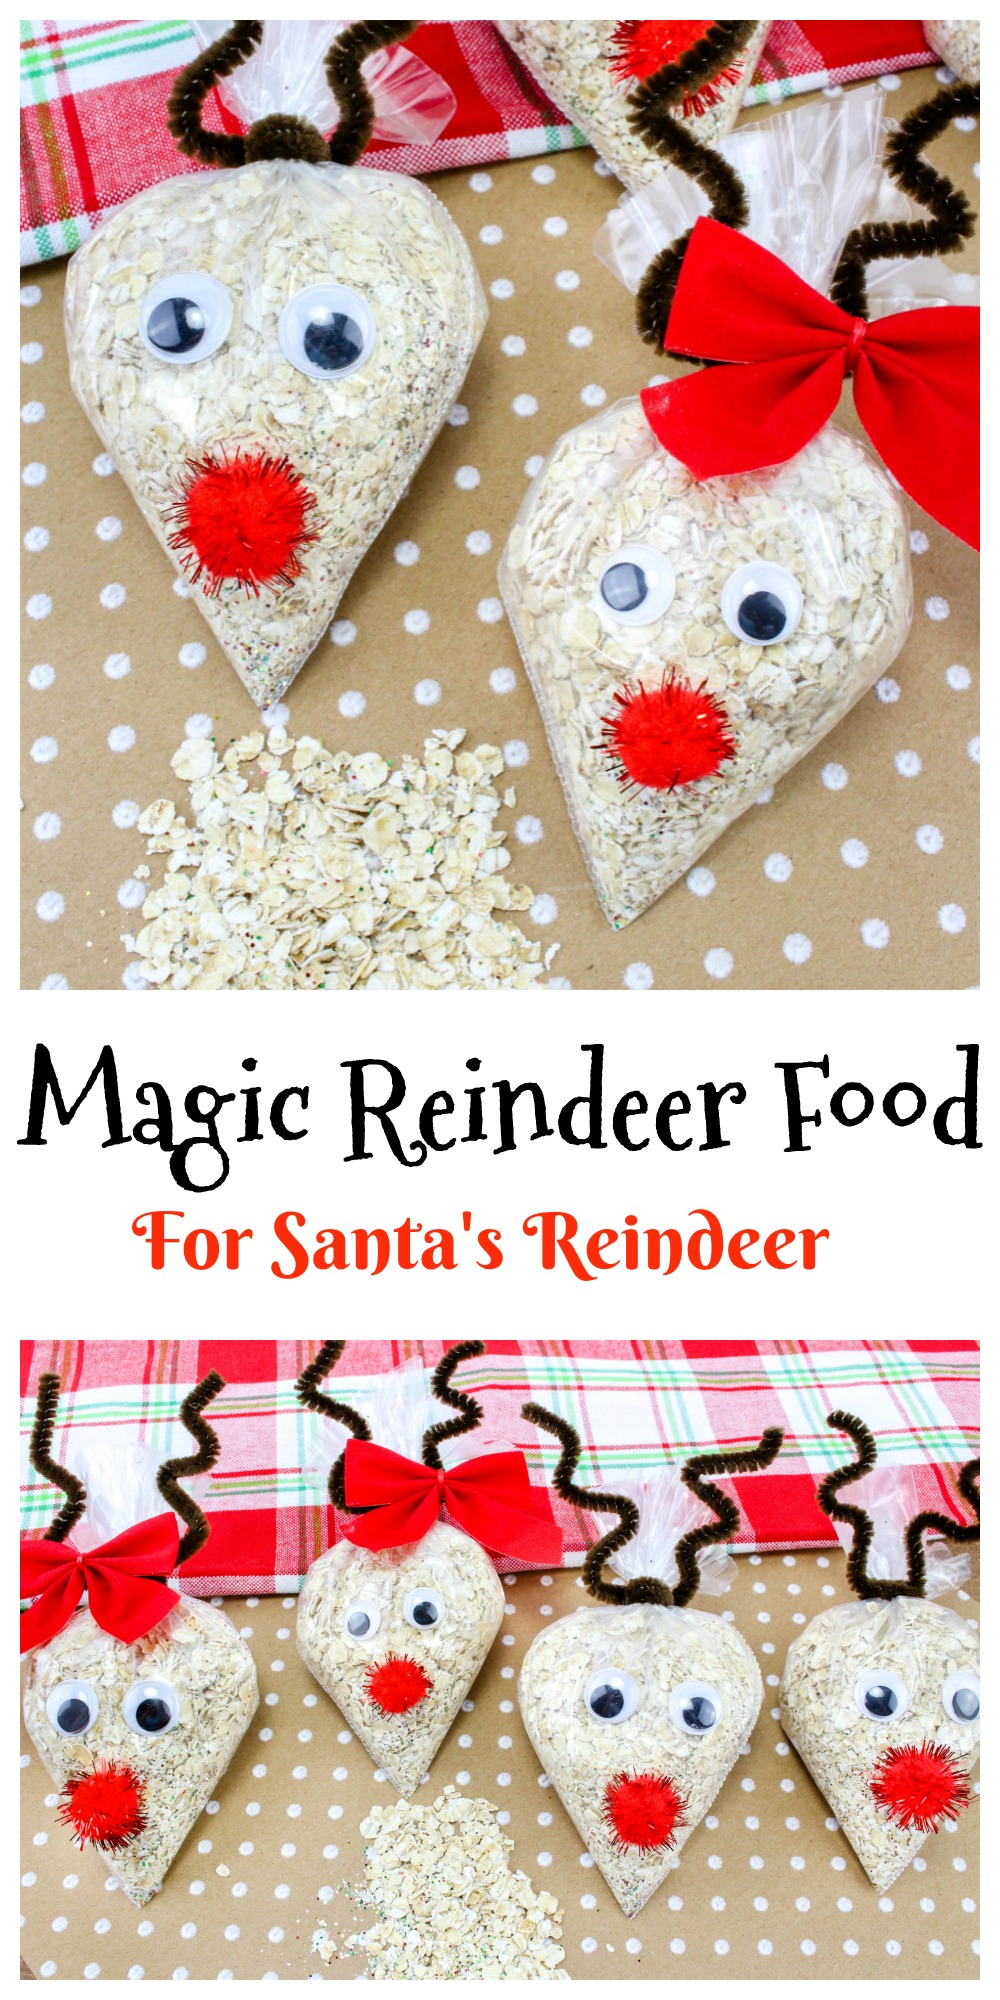 Magic Reindeer Food is really easy to make and it brings the kids so much joy to make this special treat for all of Santa's reindeer on Christmas eve.